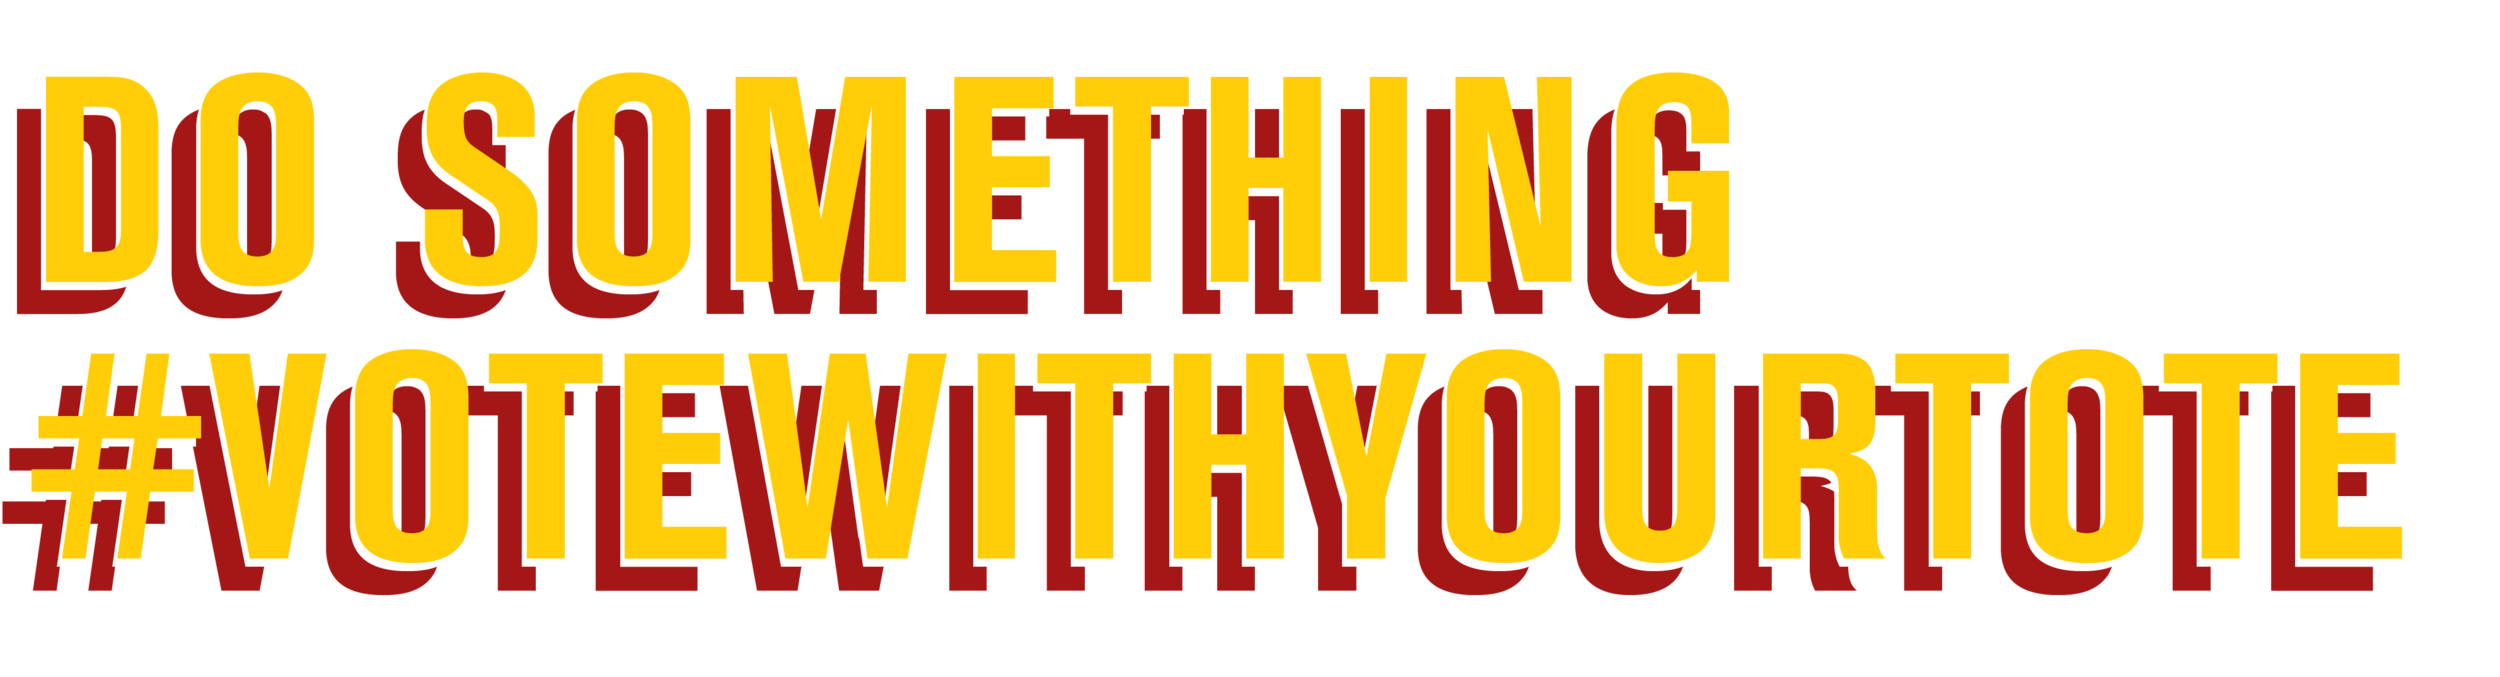 1_DoSomething_Header.png